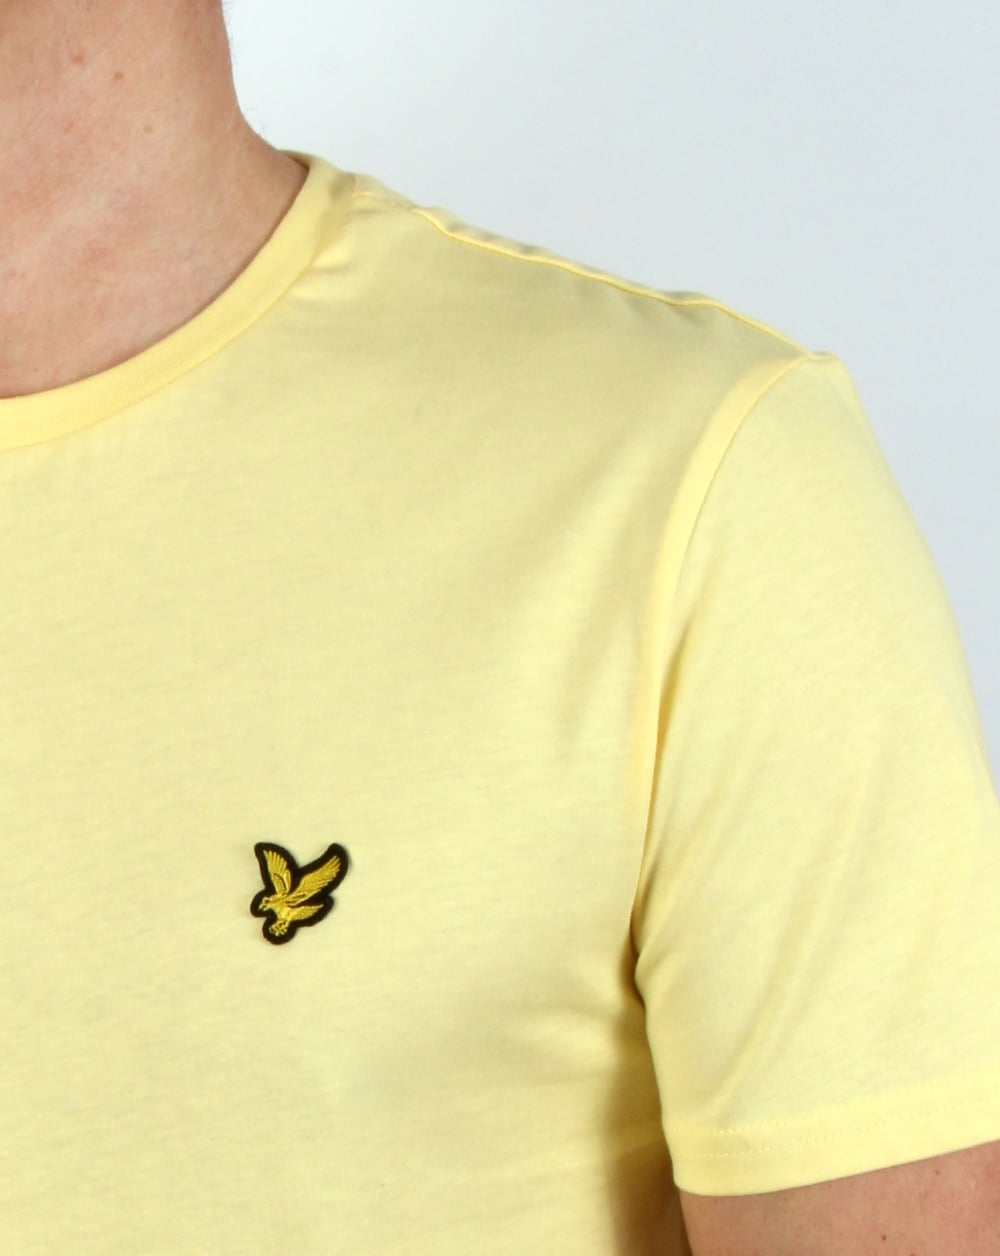 Best Pale Yellow Paints For Kitchen: Lyle And Scott T-shirt Pale Yellow, Men's, Tee, Top, Crew Neck